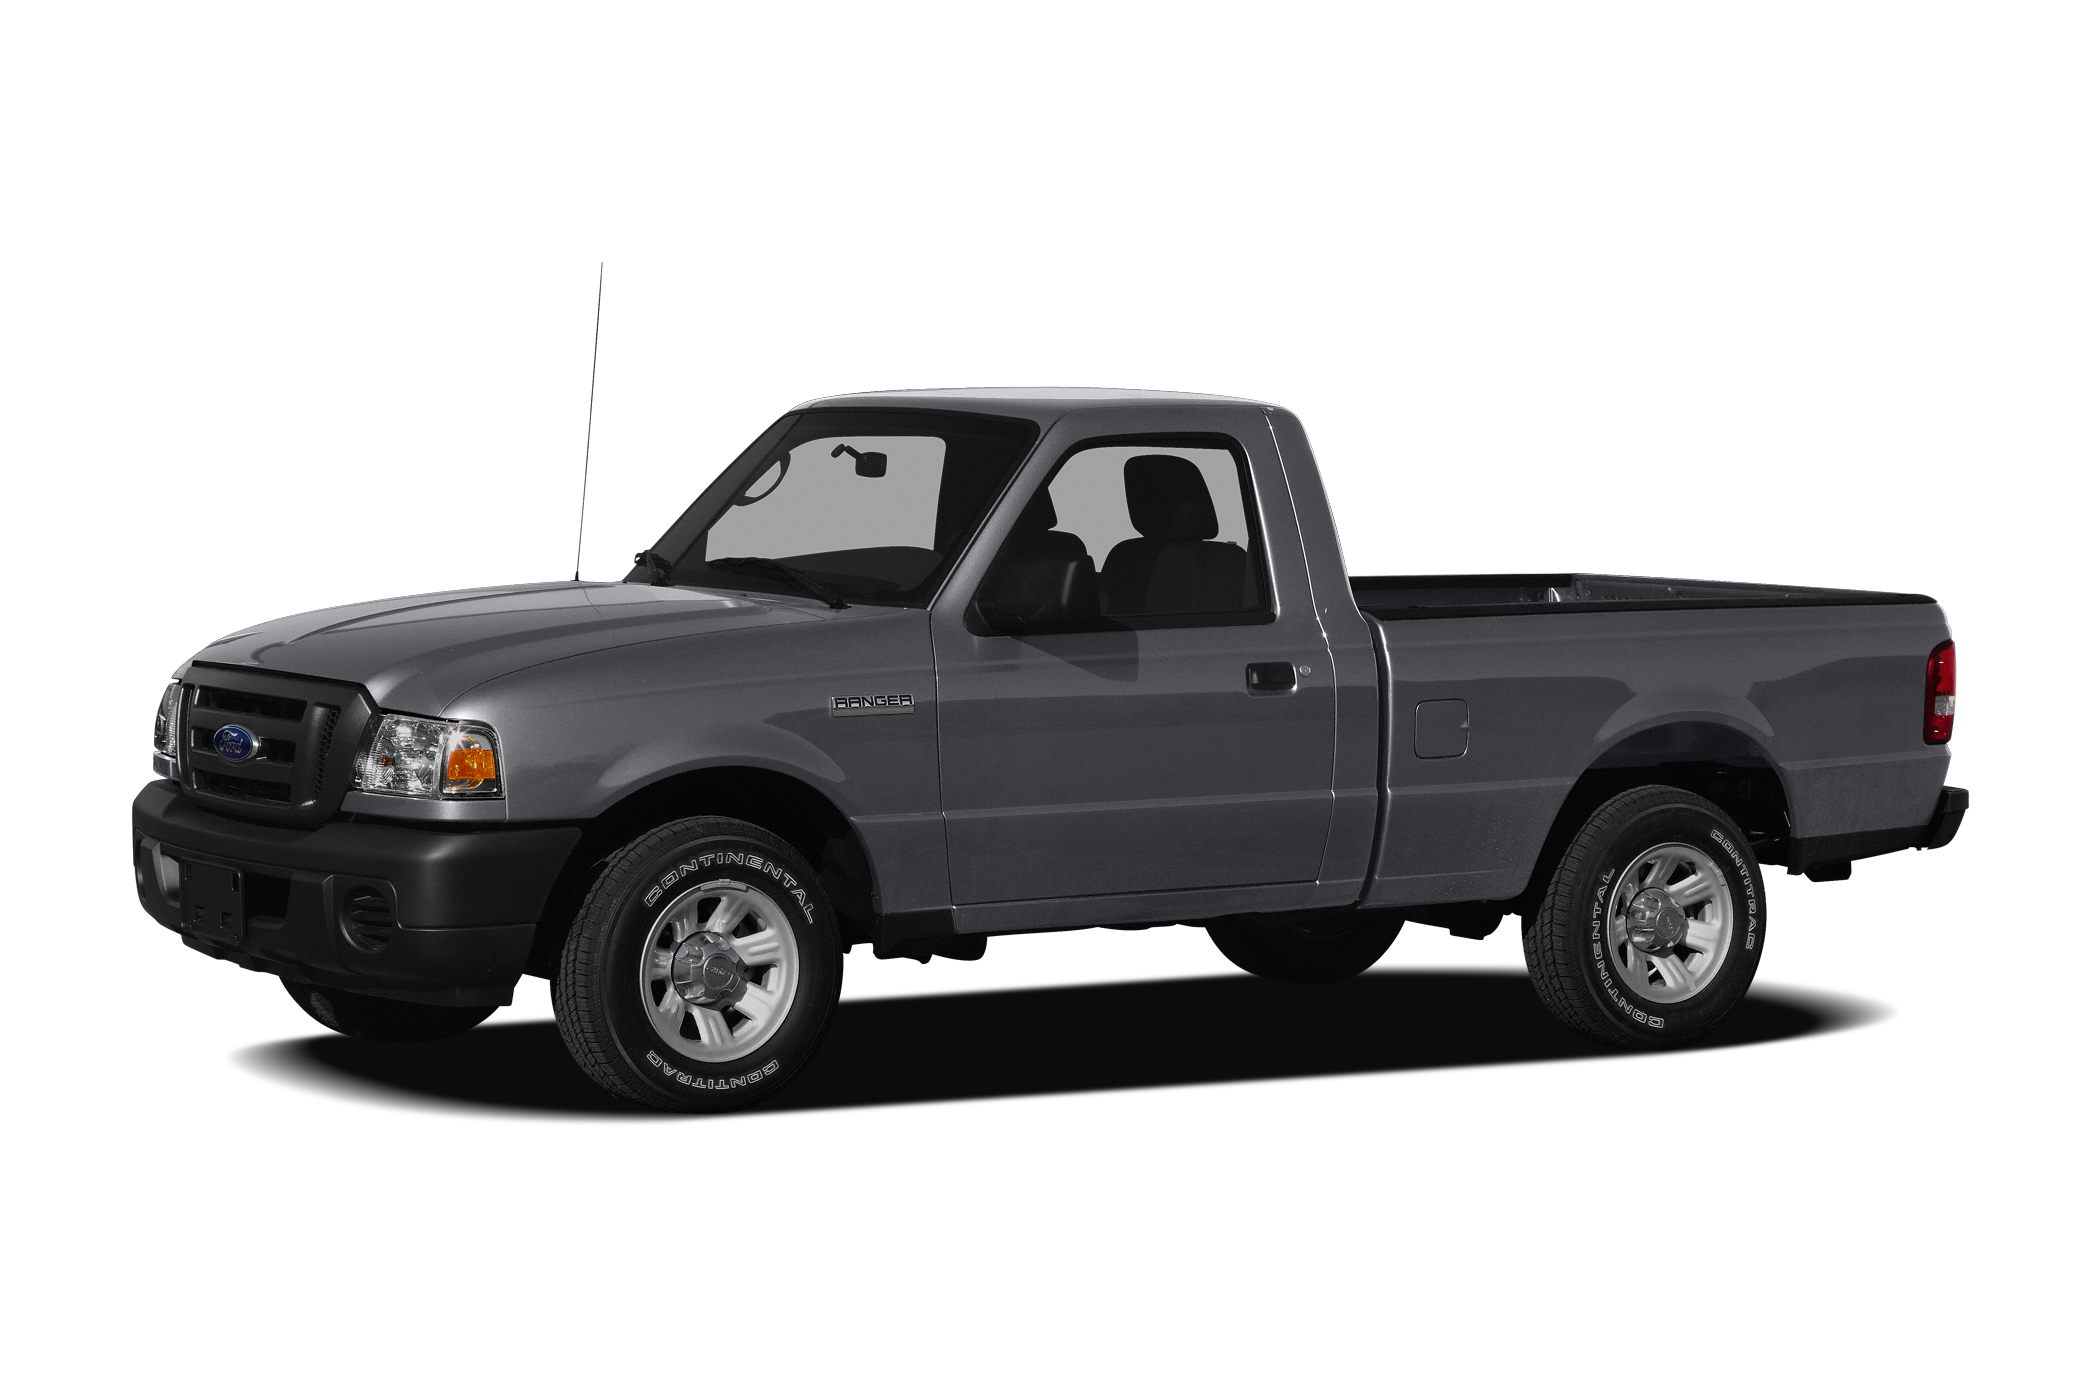 2009 Ford Ranger XL Regular Cab Pickup for sale in Athens for $8,906 with 93,722 miles